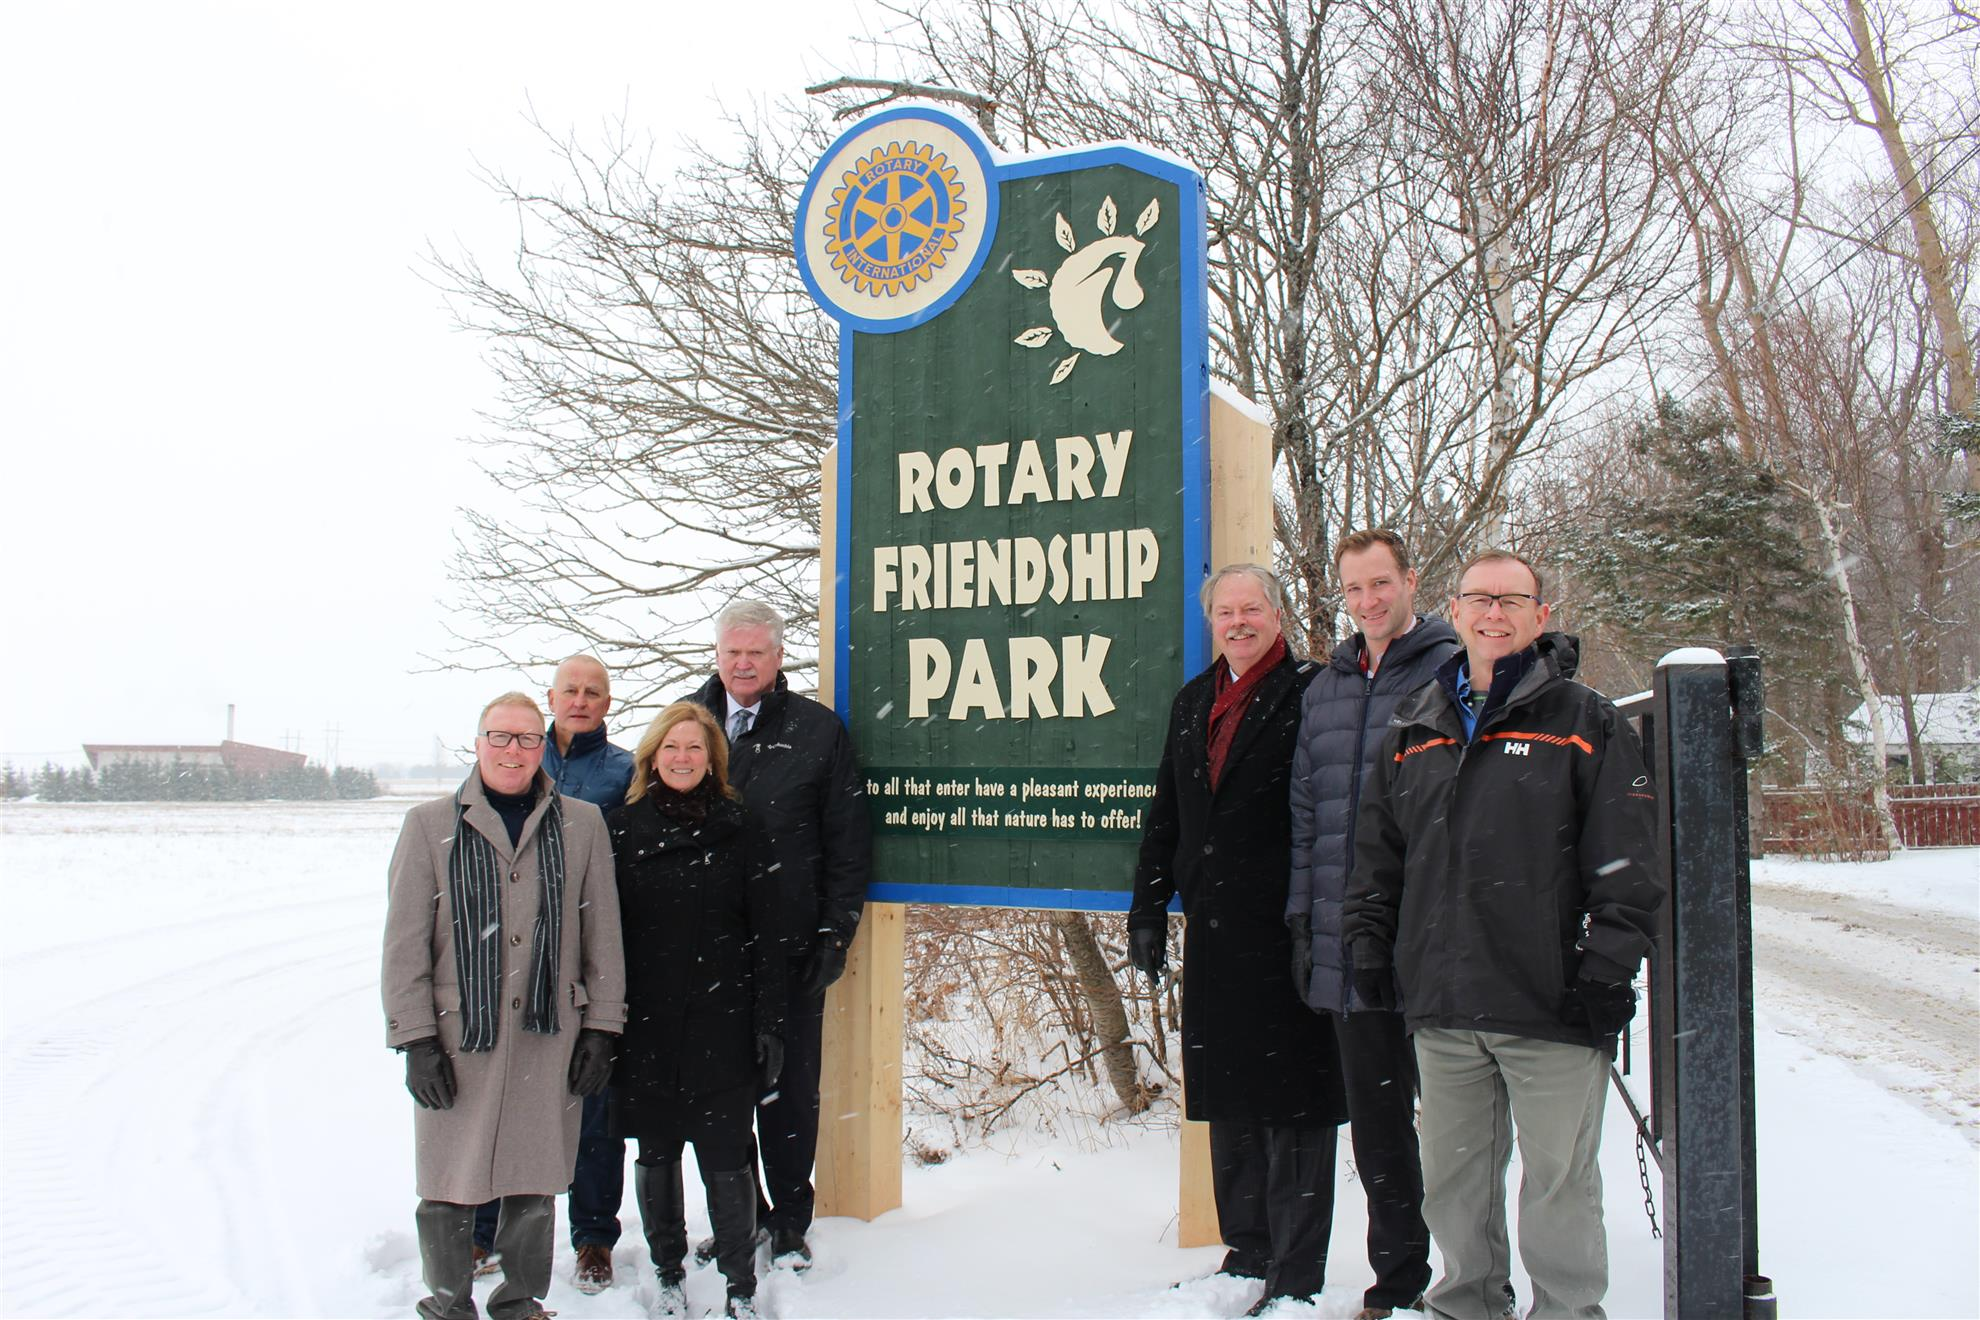 Stories | Rotary District 7820 on